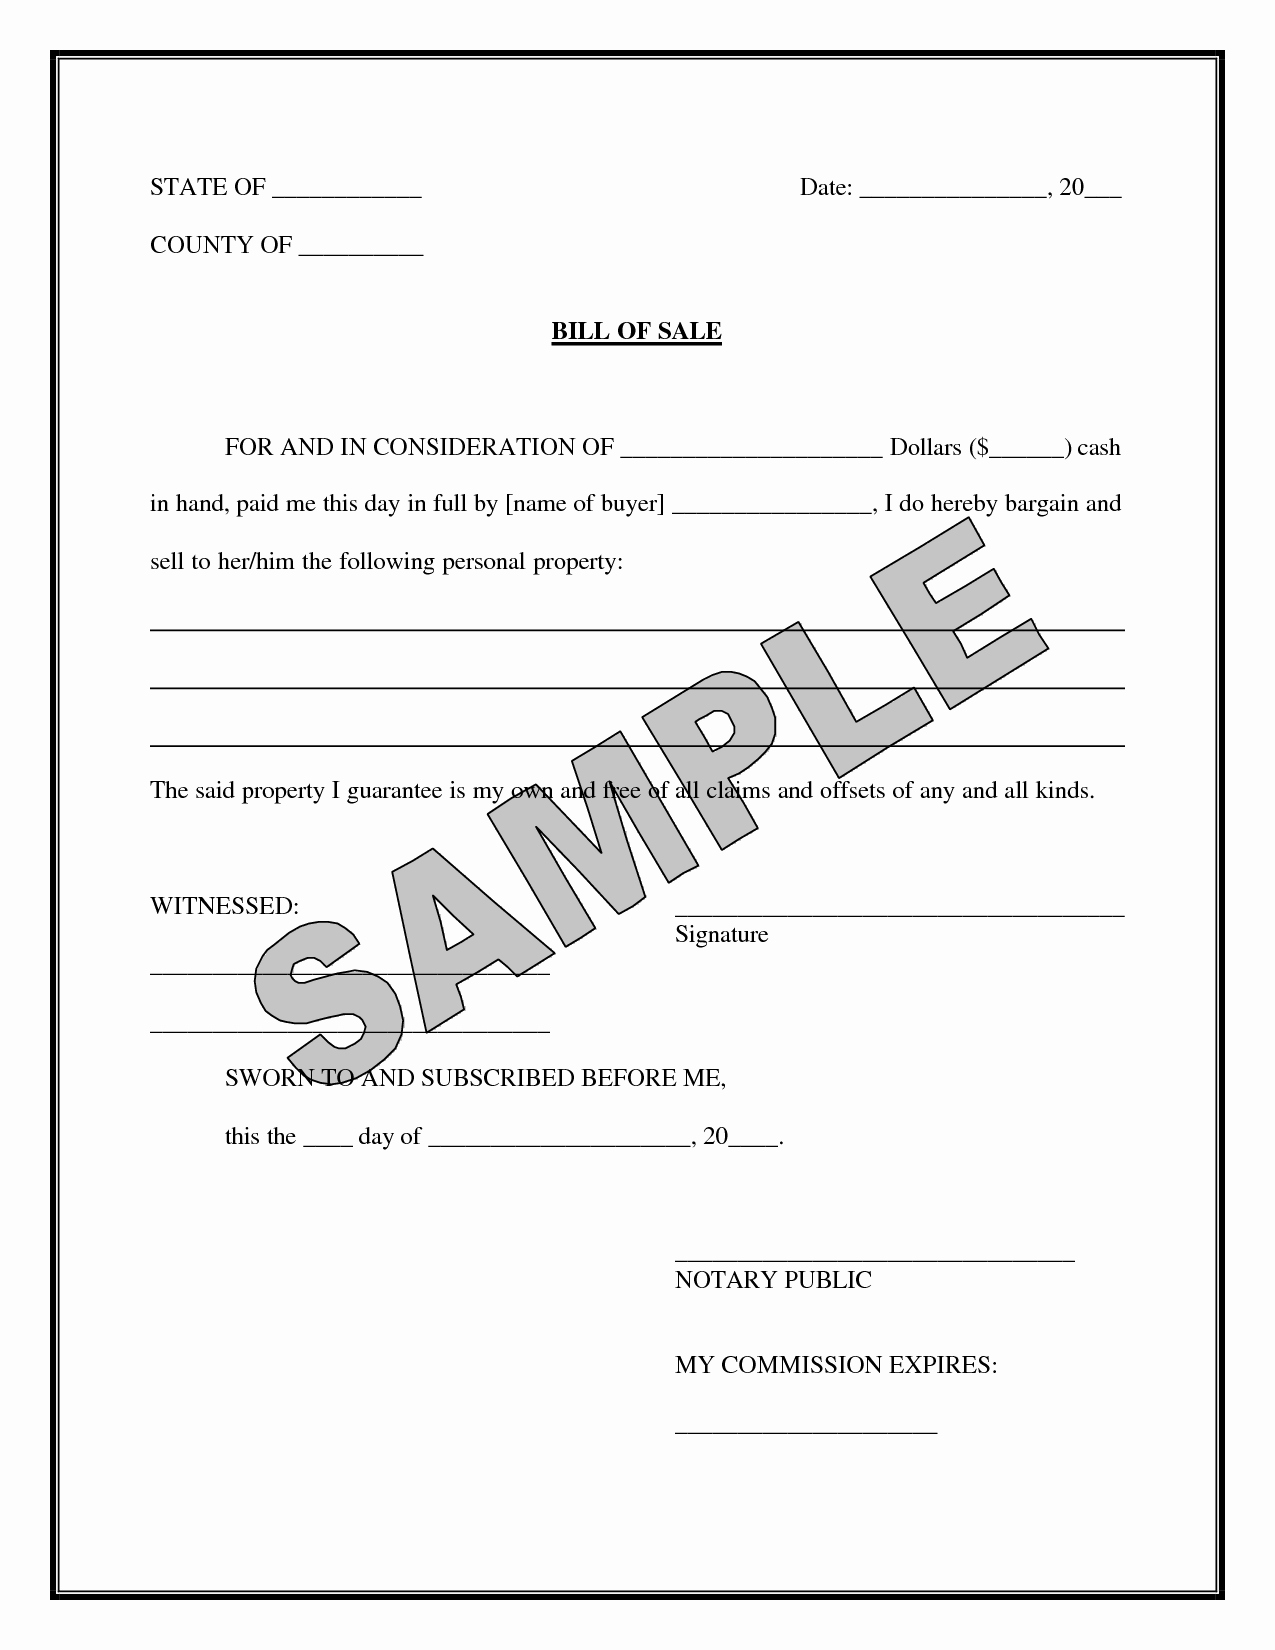 Notary Signature Example Awesome Notary Signature format